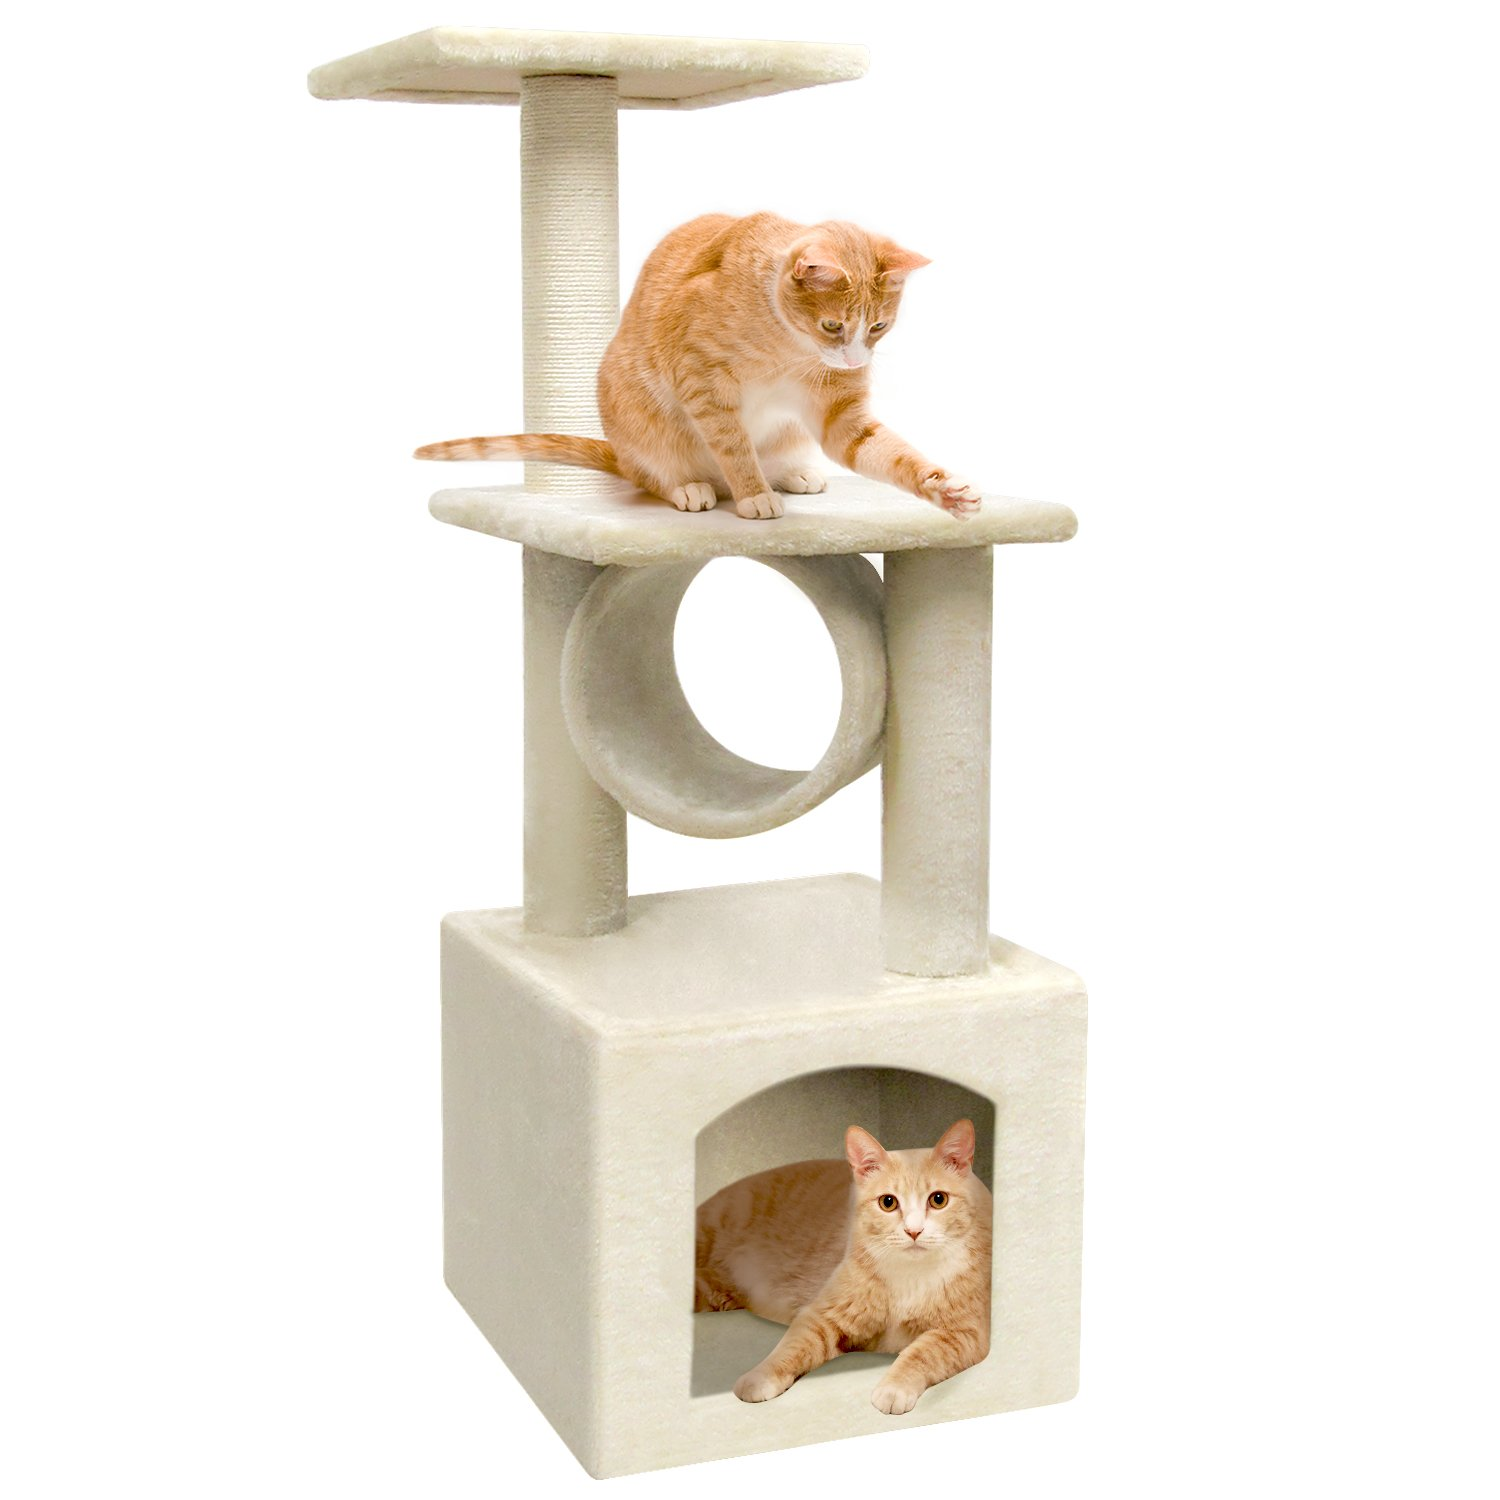 BEAU JARDIN 36 inch Cat Tree Condo Furniture Scratcher Scratching Posts Beige Cat Tower Kitten Activity Trees Pet Play House Kitty Condos Cats Tabby Climber Towers Play Toy